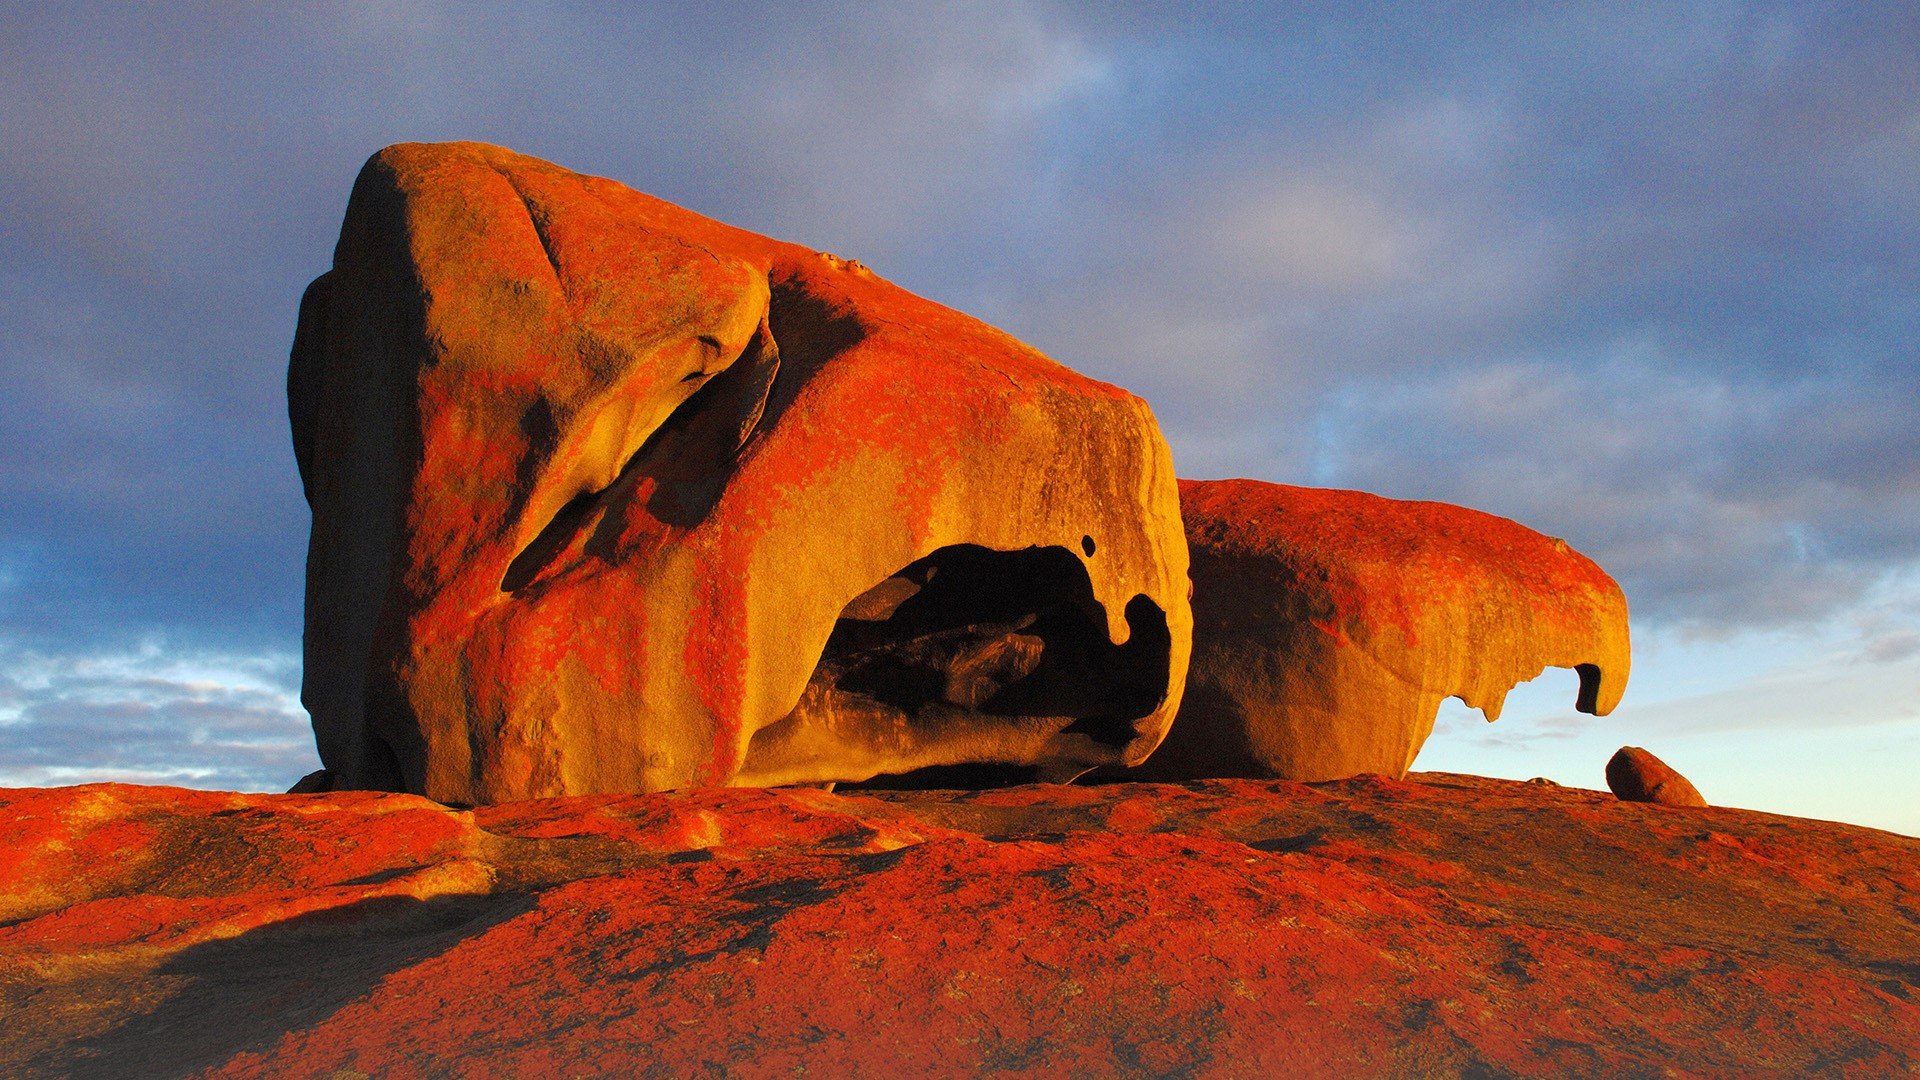 kangaroo island rock unique - photo #8